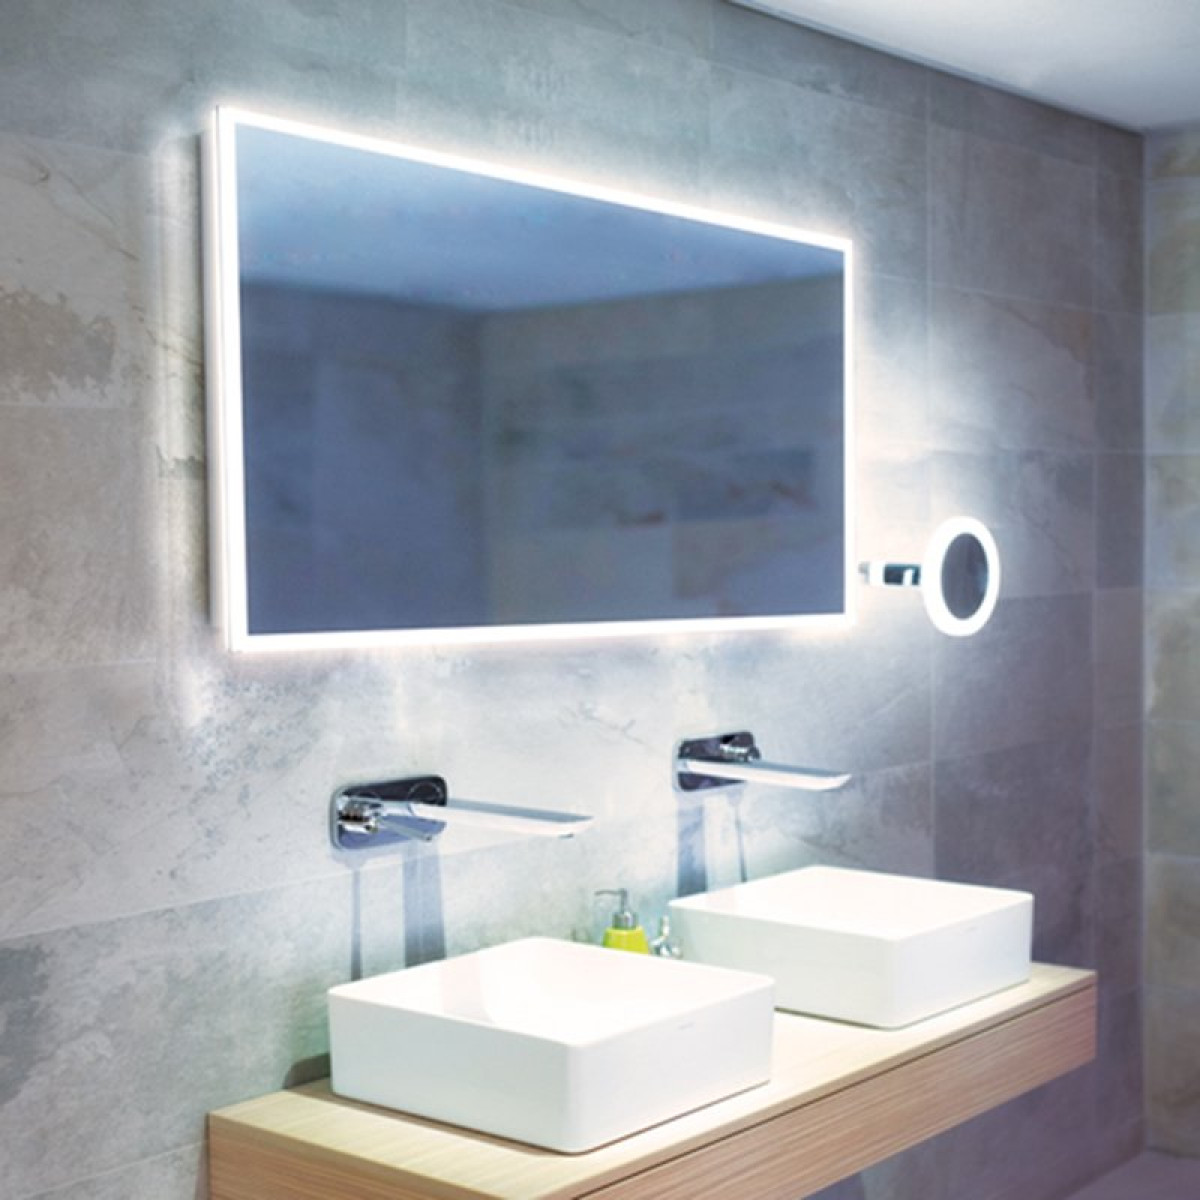 Hib Globe 120 Led Steam Free Illuminated Mirror 78700000